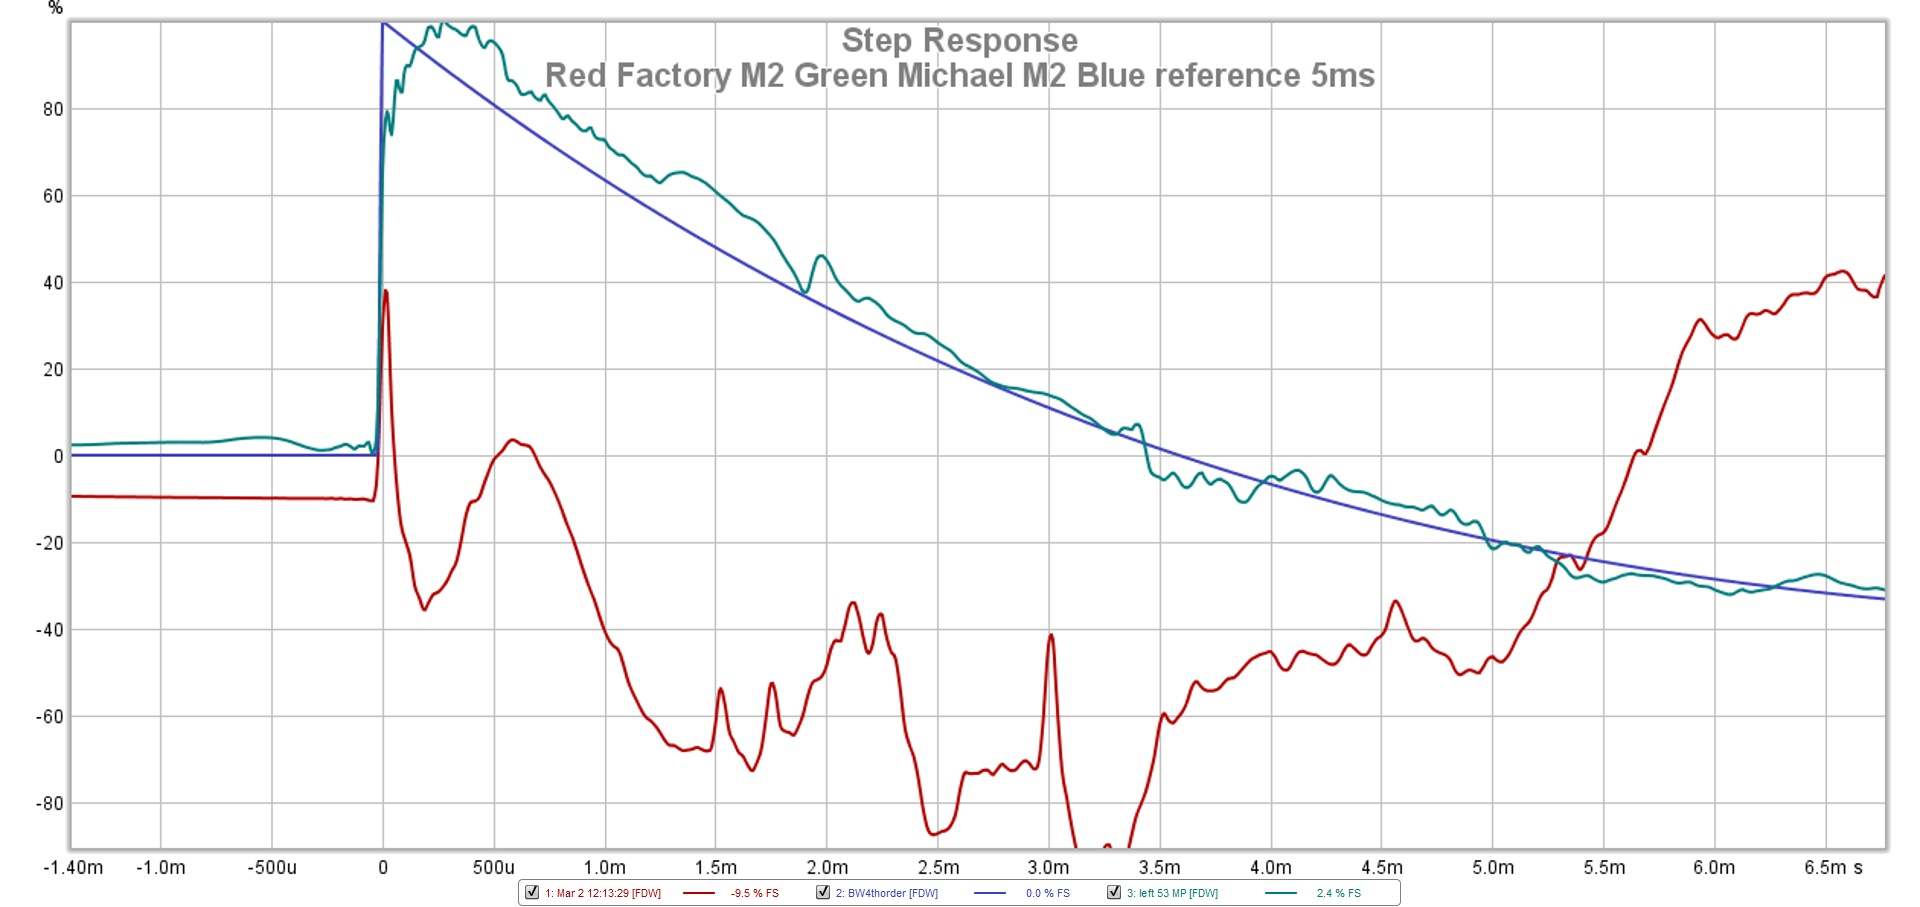 Red Factory M2 Green Michael M2 Blue reference step 5ms.jpg